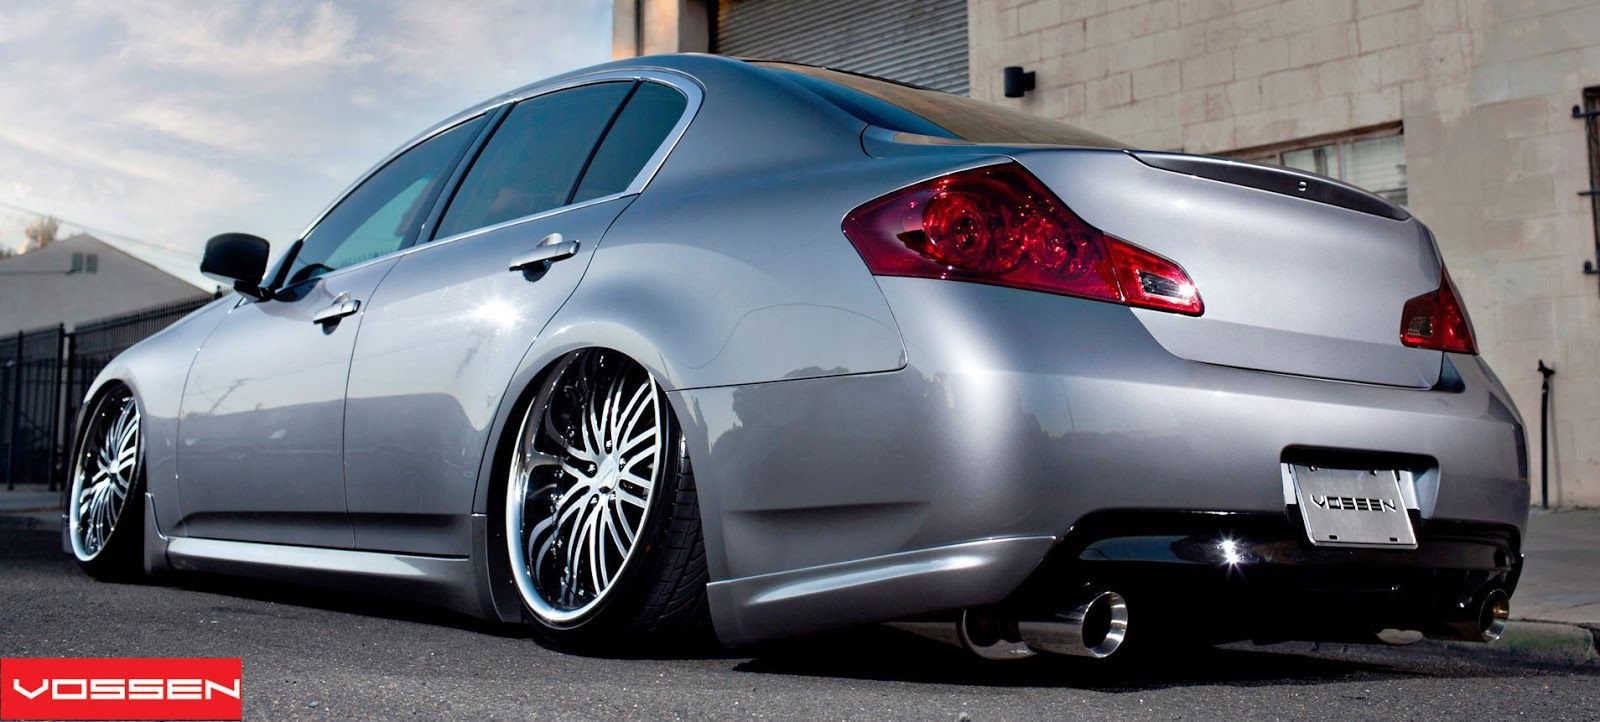 Tricked out showkase slammed infiniti g37 infiniti of tricked out showkase slammed infiniti g37 infiniti of clarendon hills http vanachro Gallery